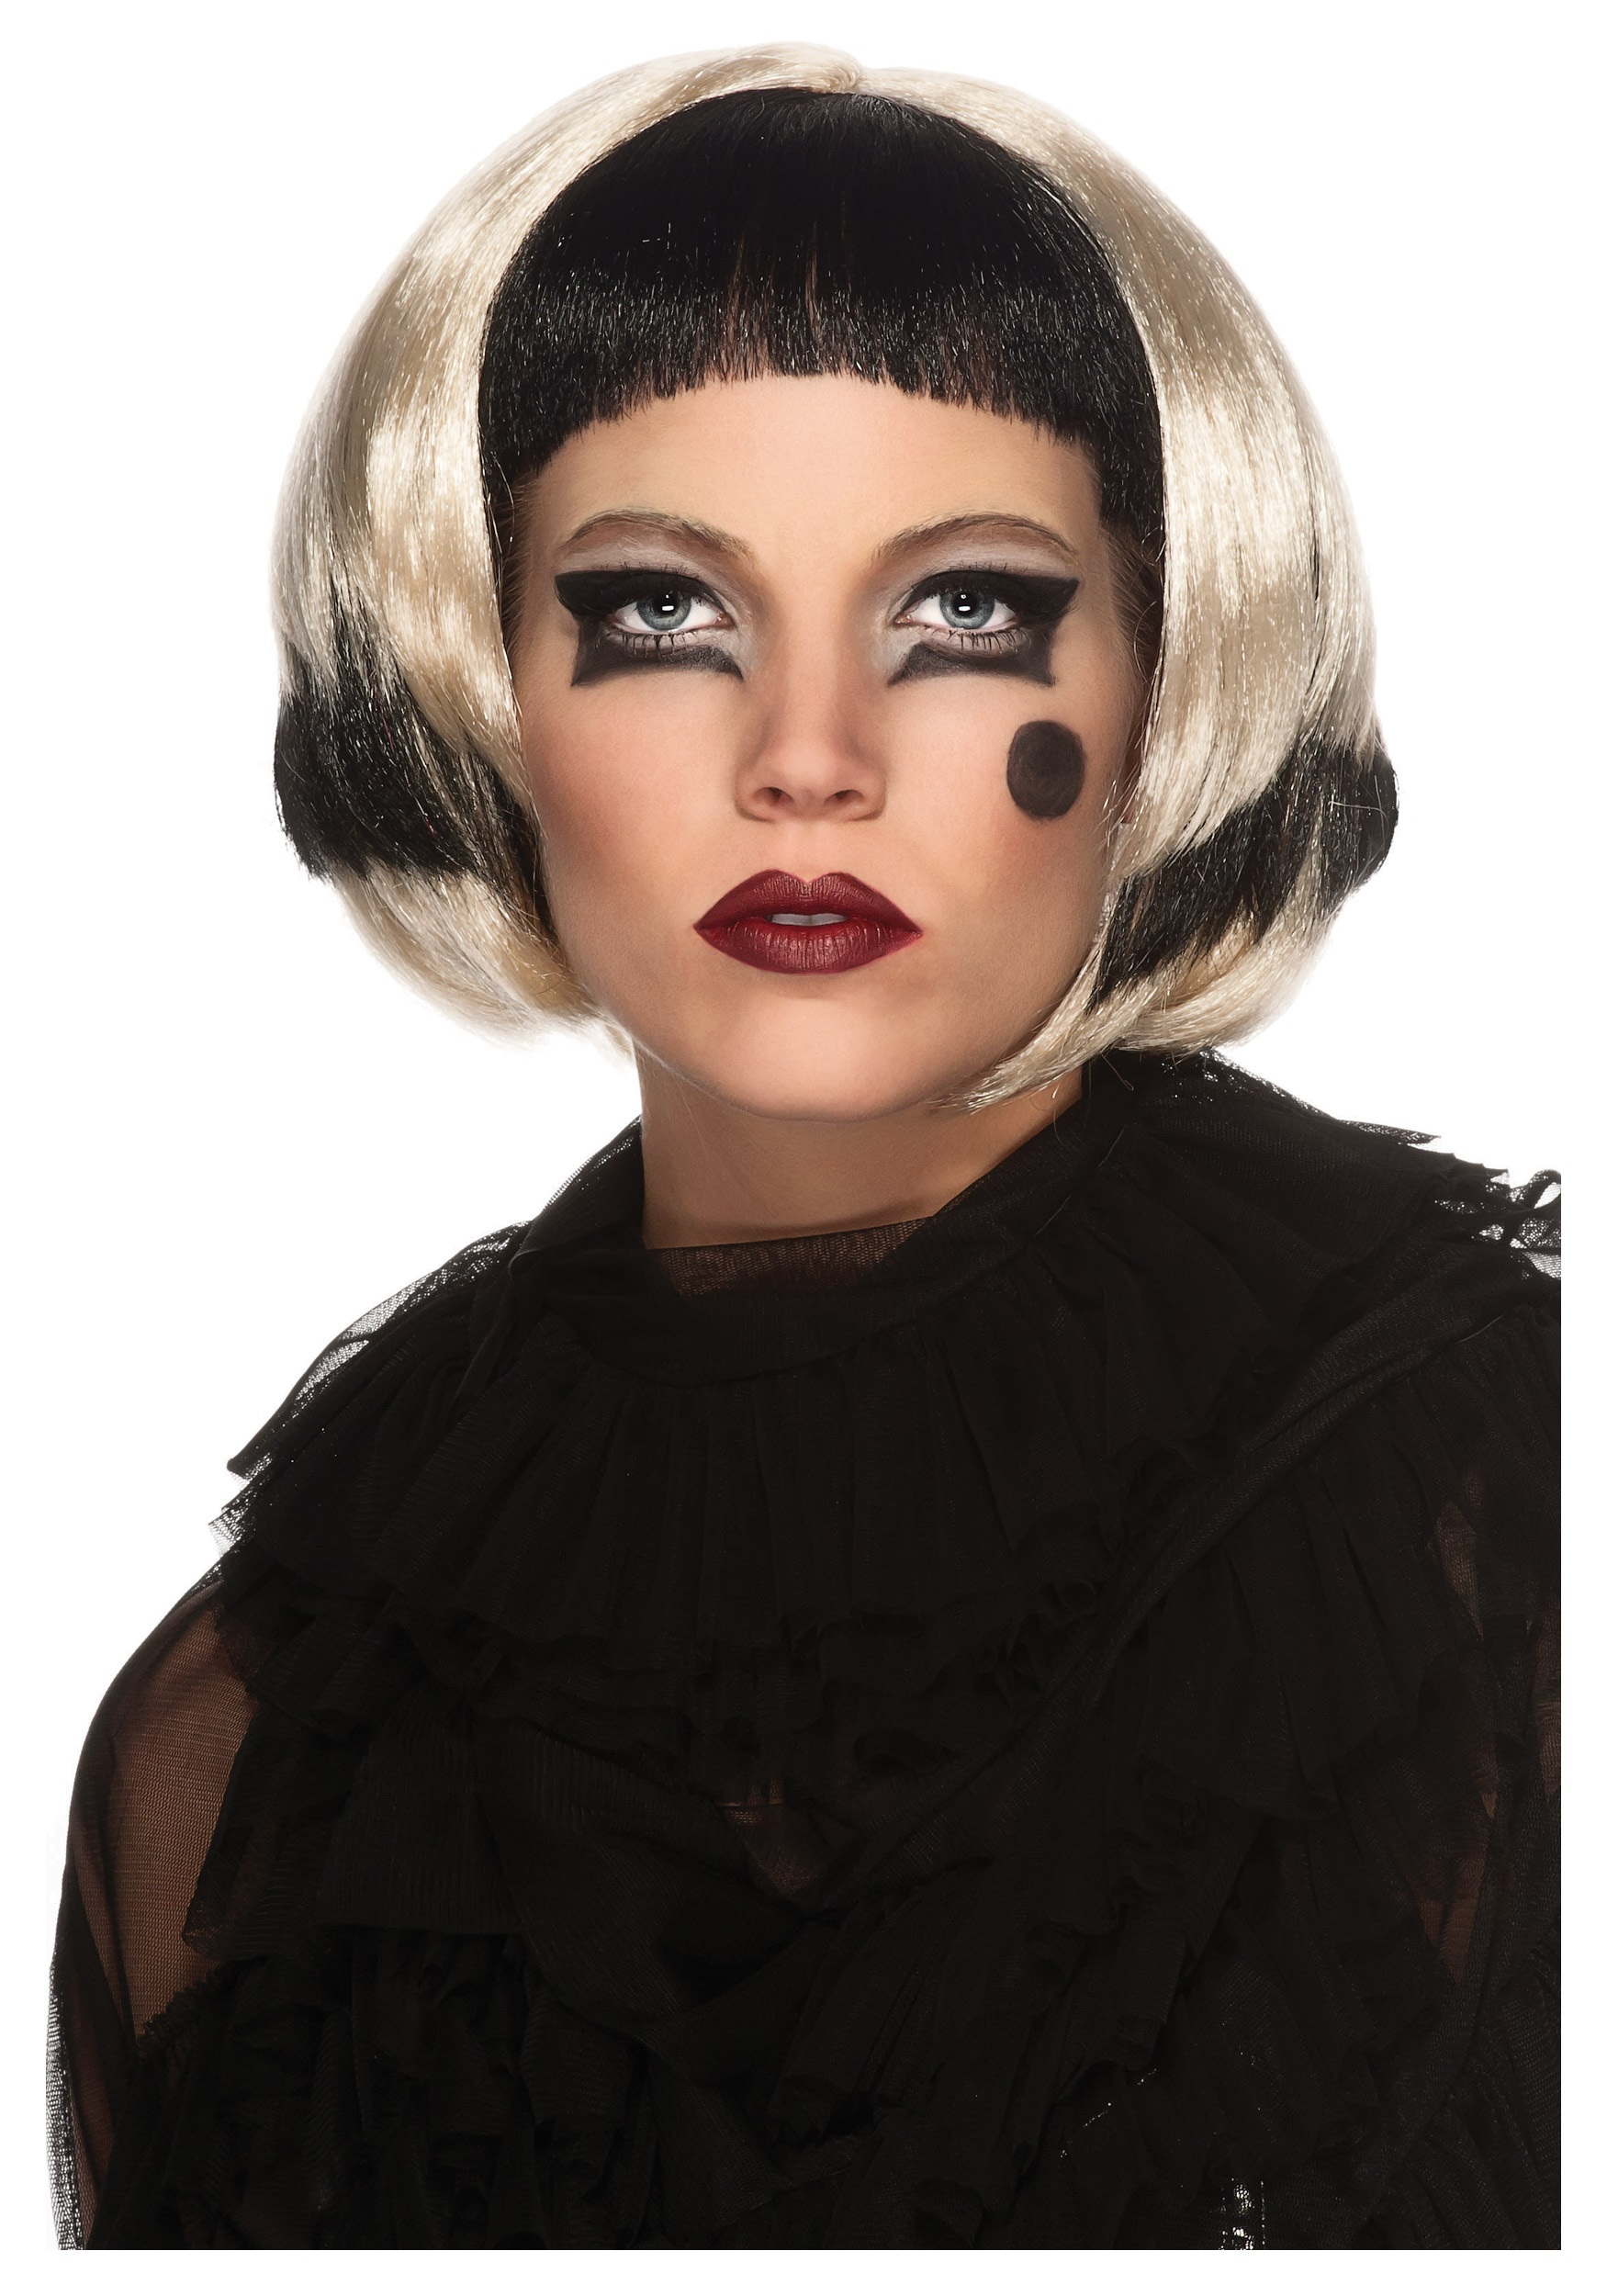 Black and Blonde Lady Gaga Wig  sc 1 st  Halloween Costumes & Black and Blonde Lady Gaga Wig - Halloween Costume Ideas 2016